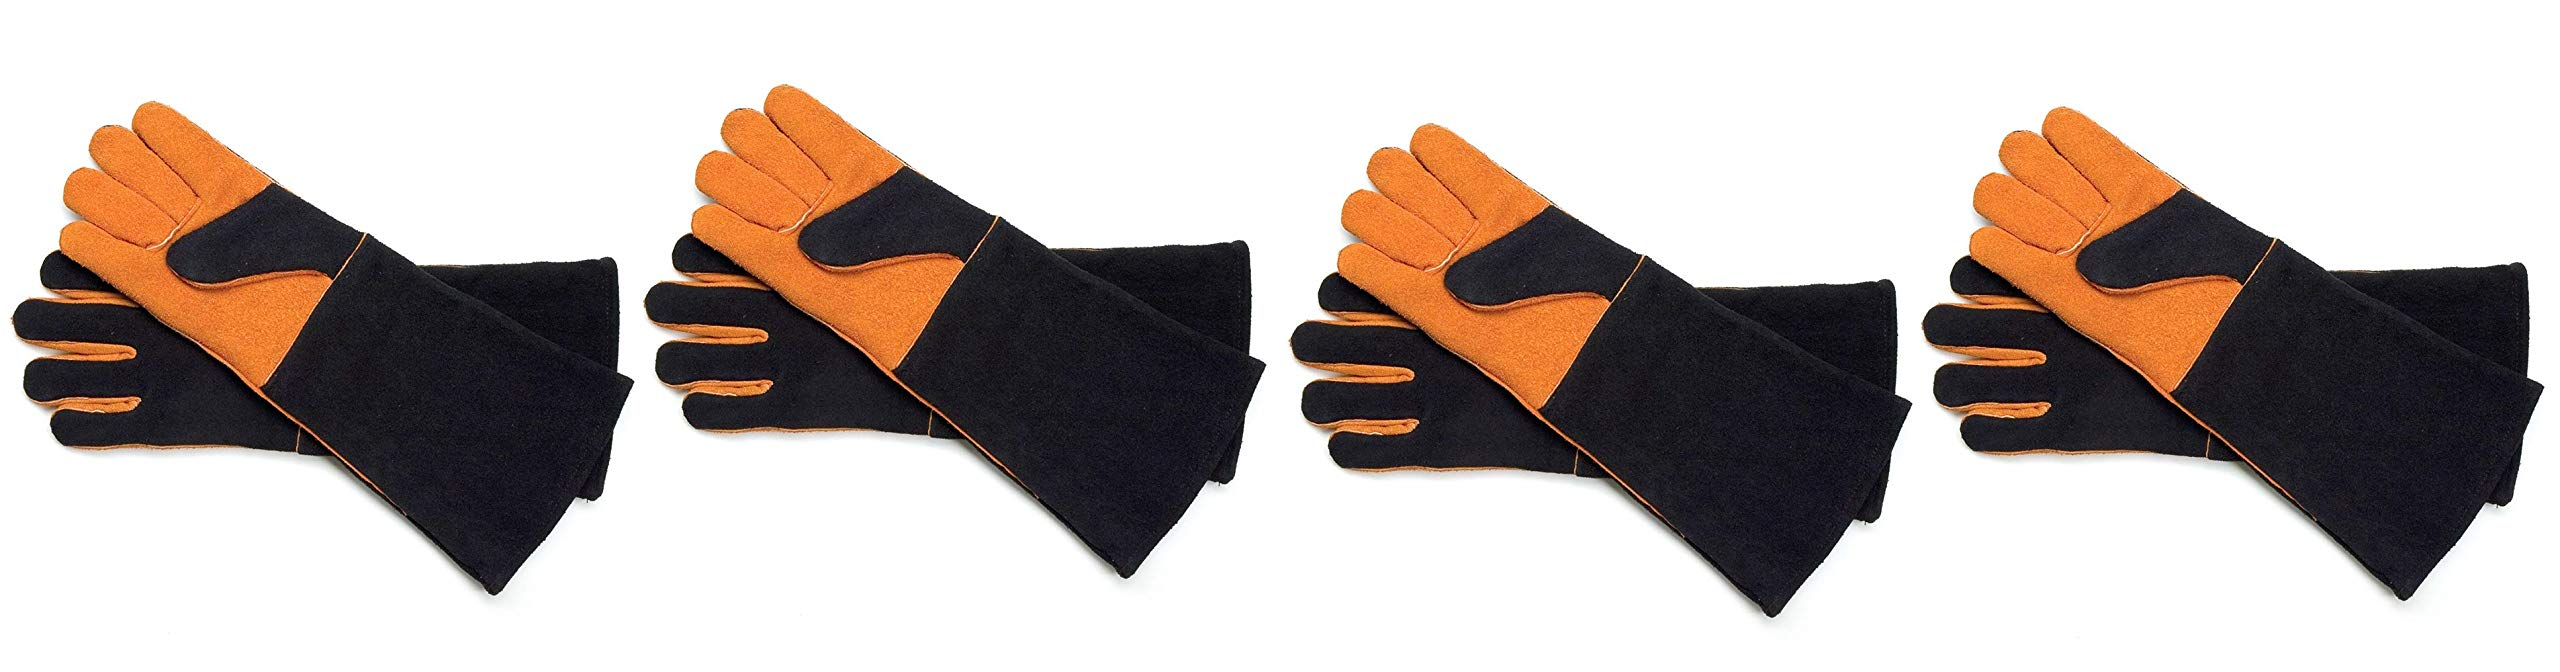 Steven Raichlen Best of Barbecue Extra Long Suede Grill Gloves (Pair) - SR8038 (Fоur Paсk)